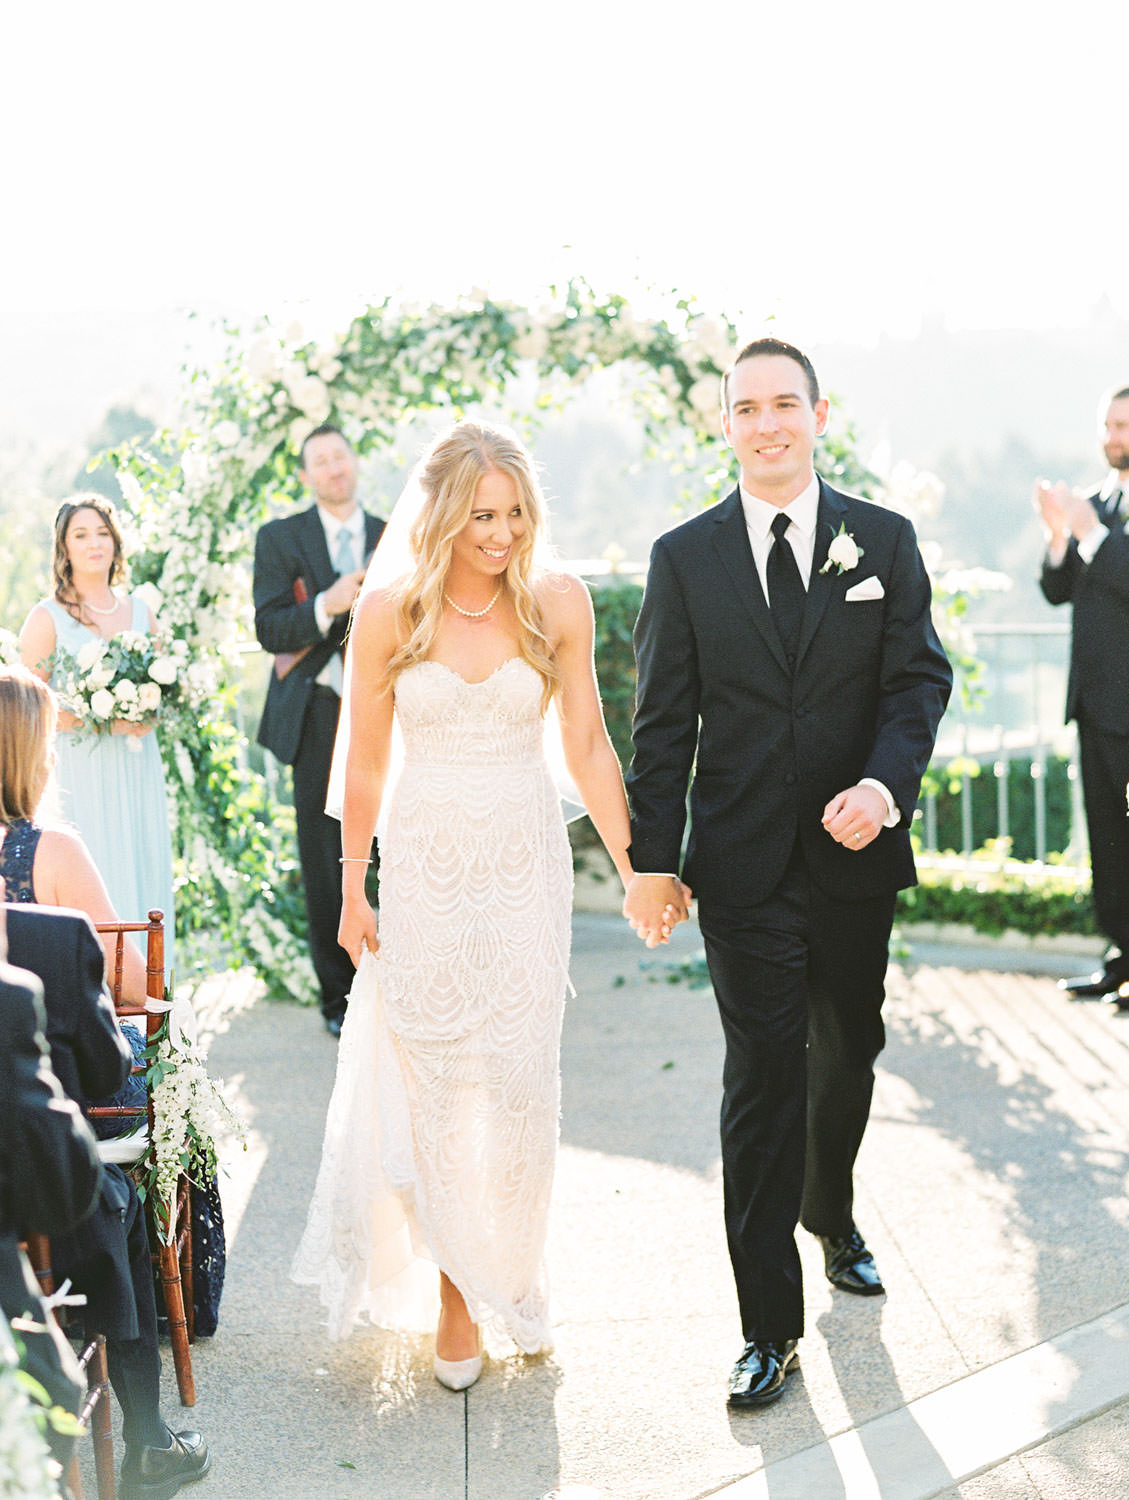 Film photo of just married bride and groom walking down the aisle away from a semicircle arch covered in greenery and ivory flowers. Luxury wedding ceremony arch by Compass Floral, Del Mar Country Club Wedding by Cavin Elizabeth Photography